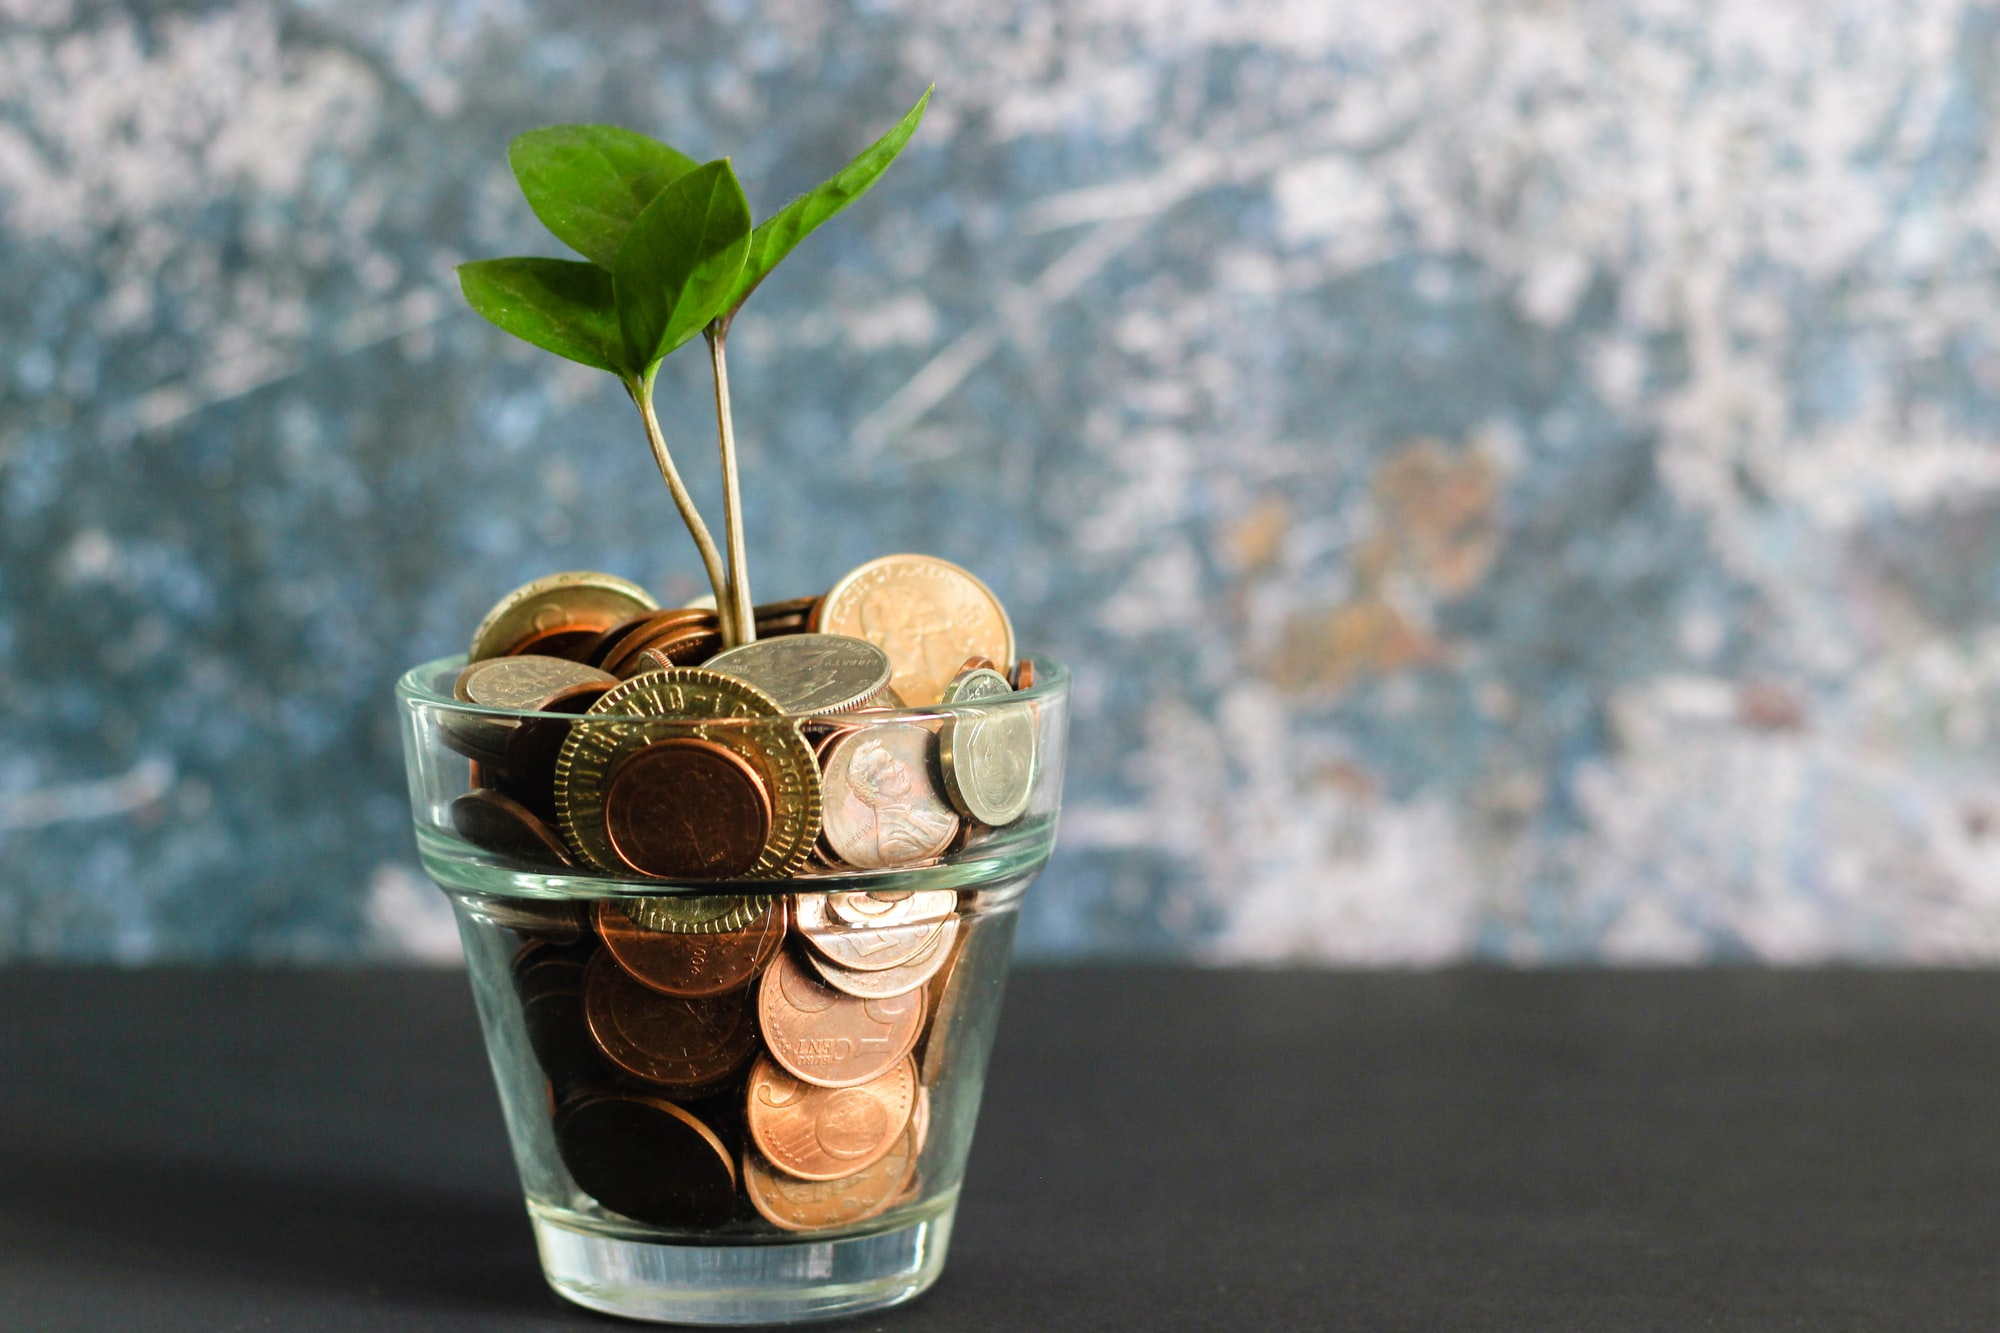 A plant growing from a jar of coins